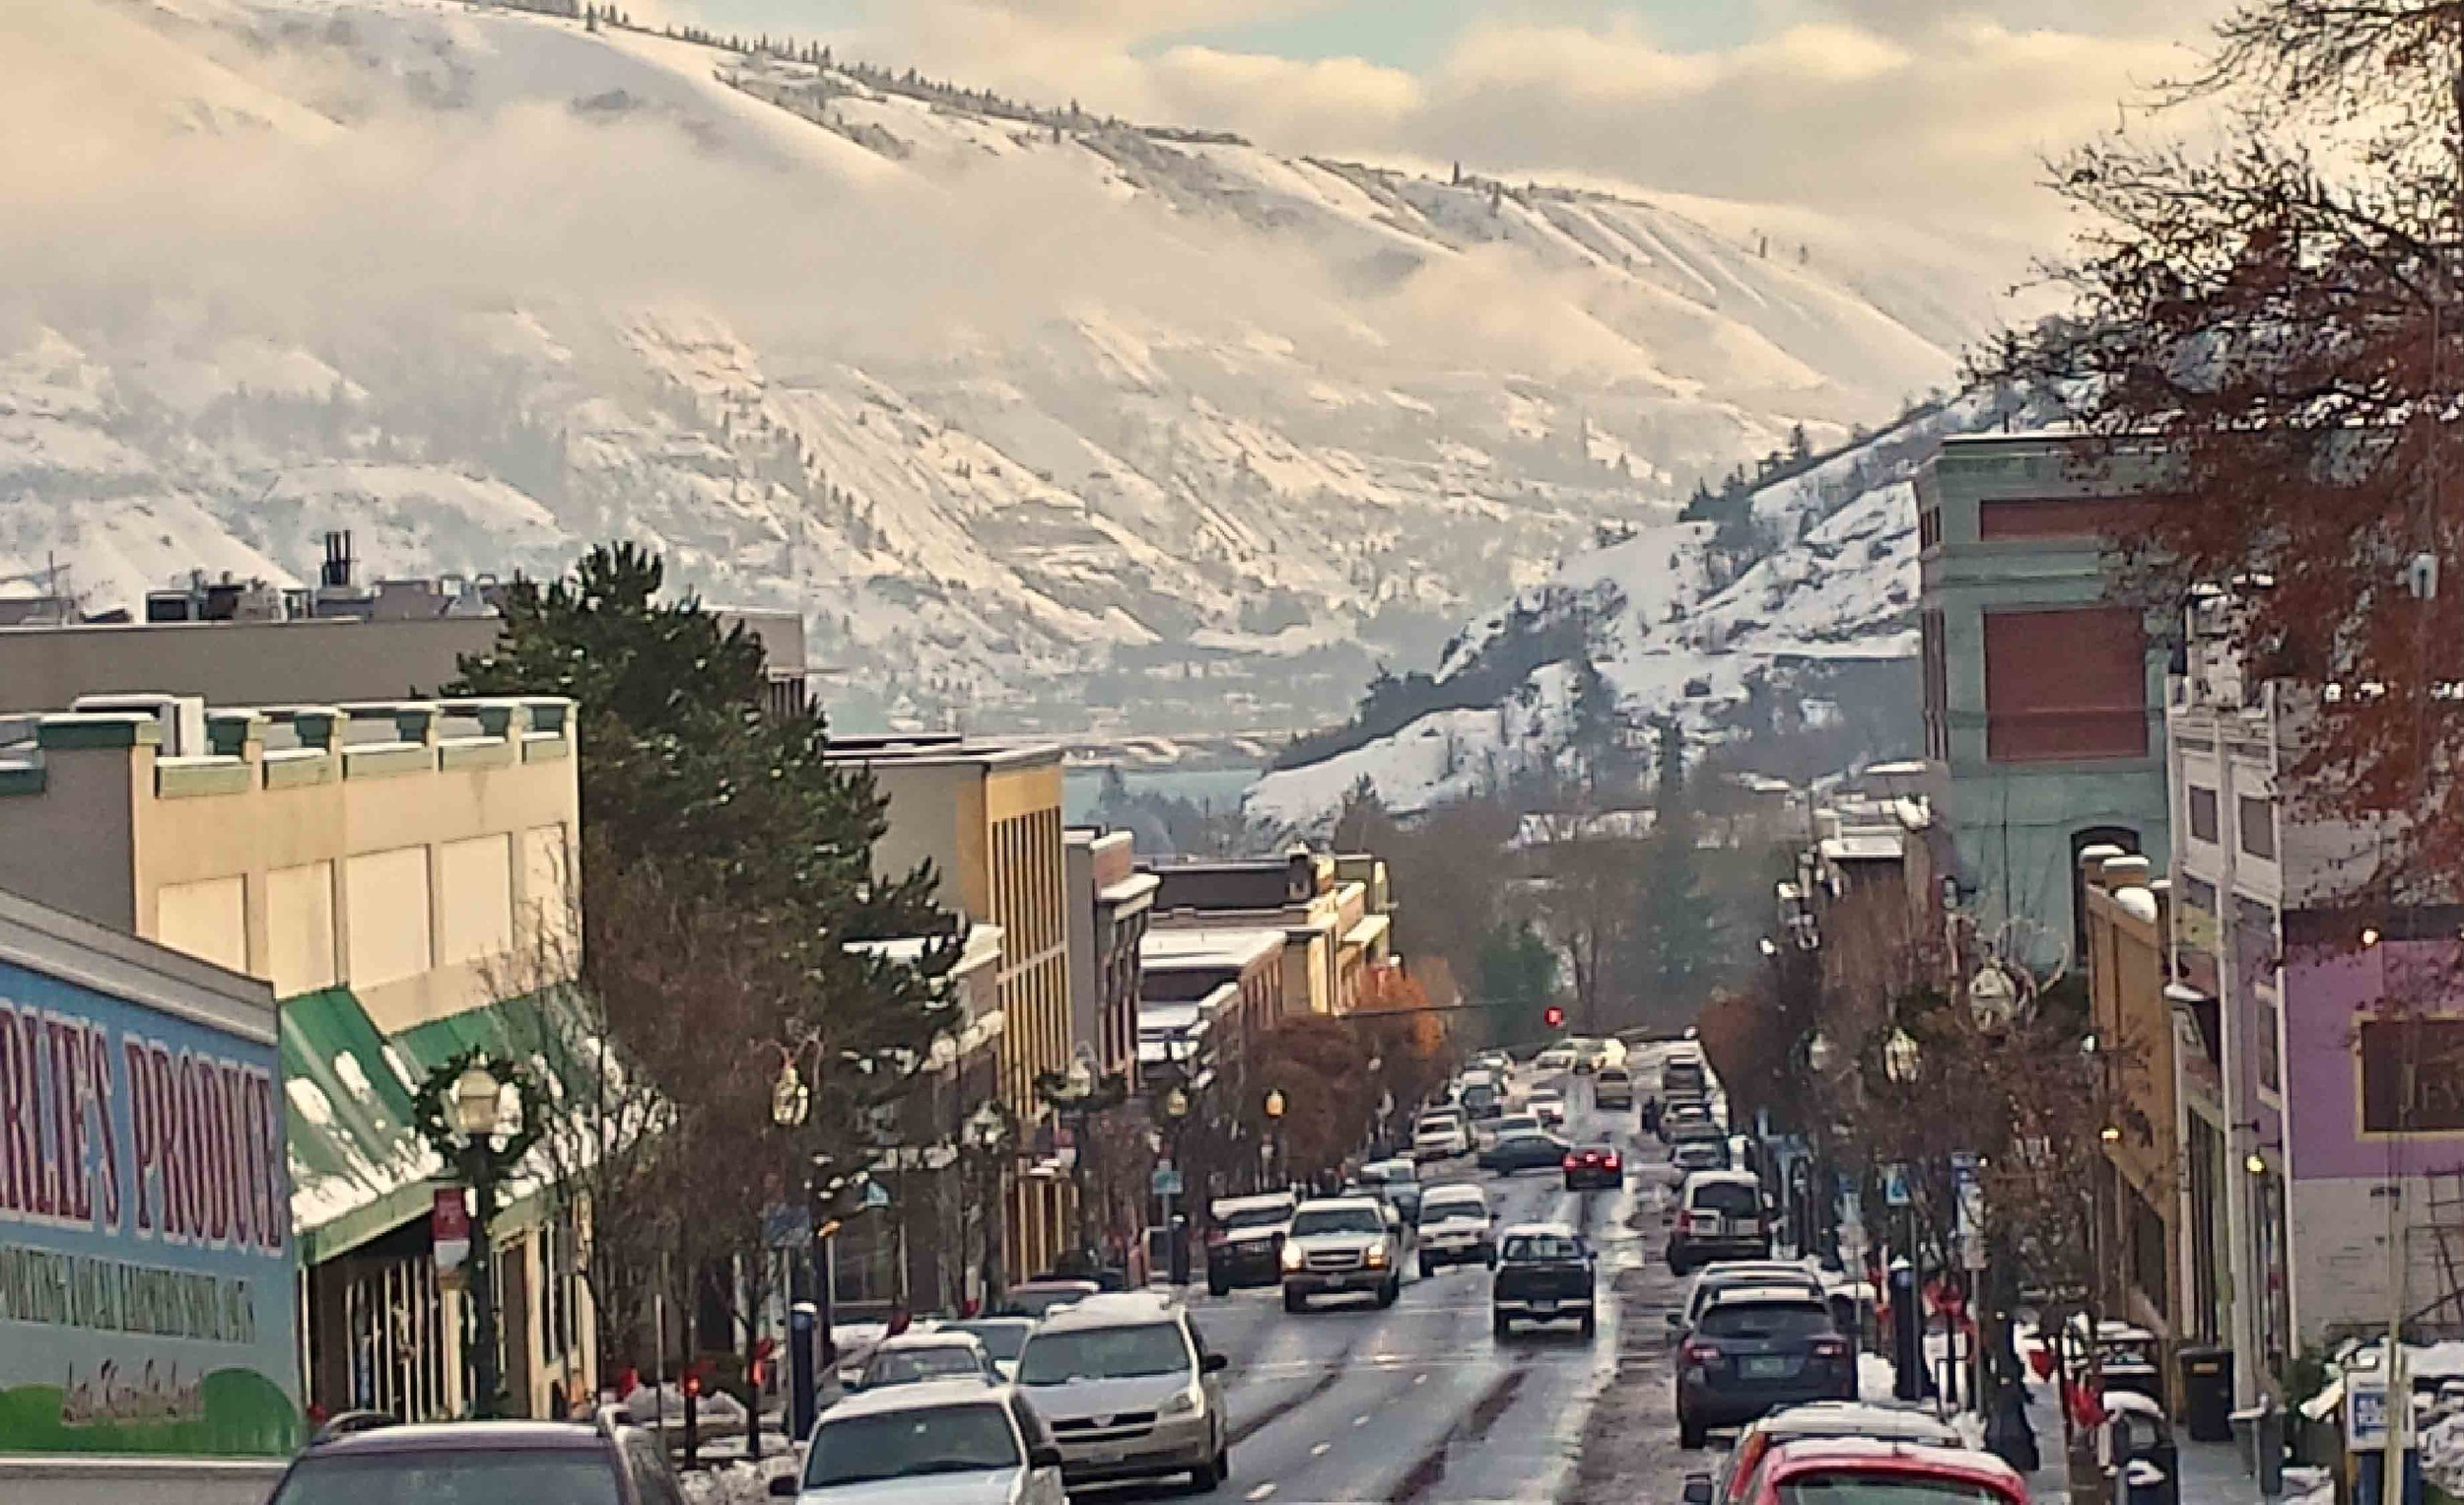 It's beginning to look a liot like Christmas! Small town USA -downtown Hood River.  Photo (c) Barb Ayers, DogDiary.org